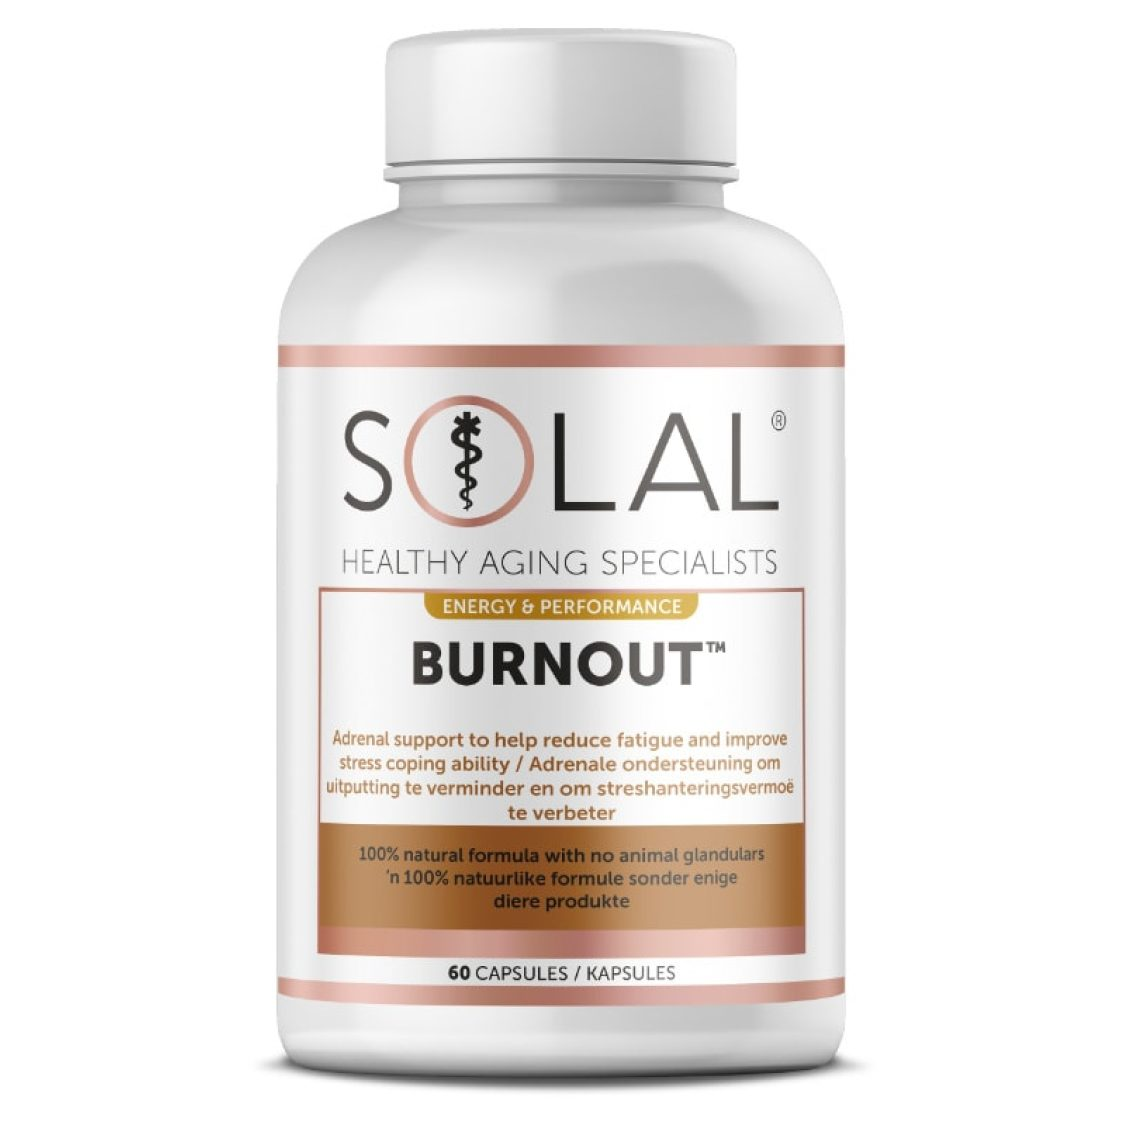 Solal - Burnout Adrenal Support